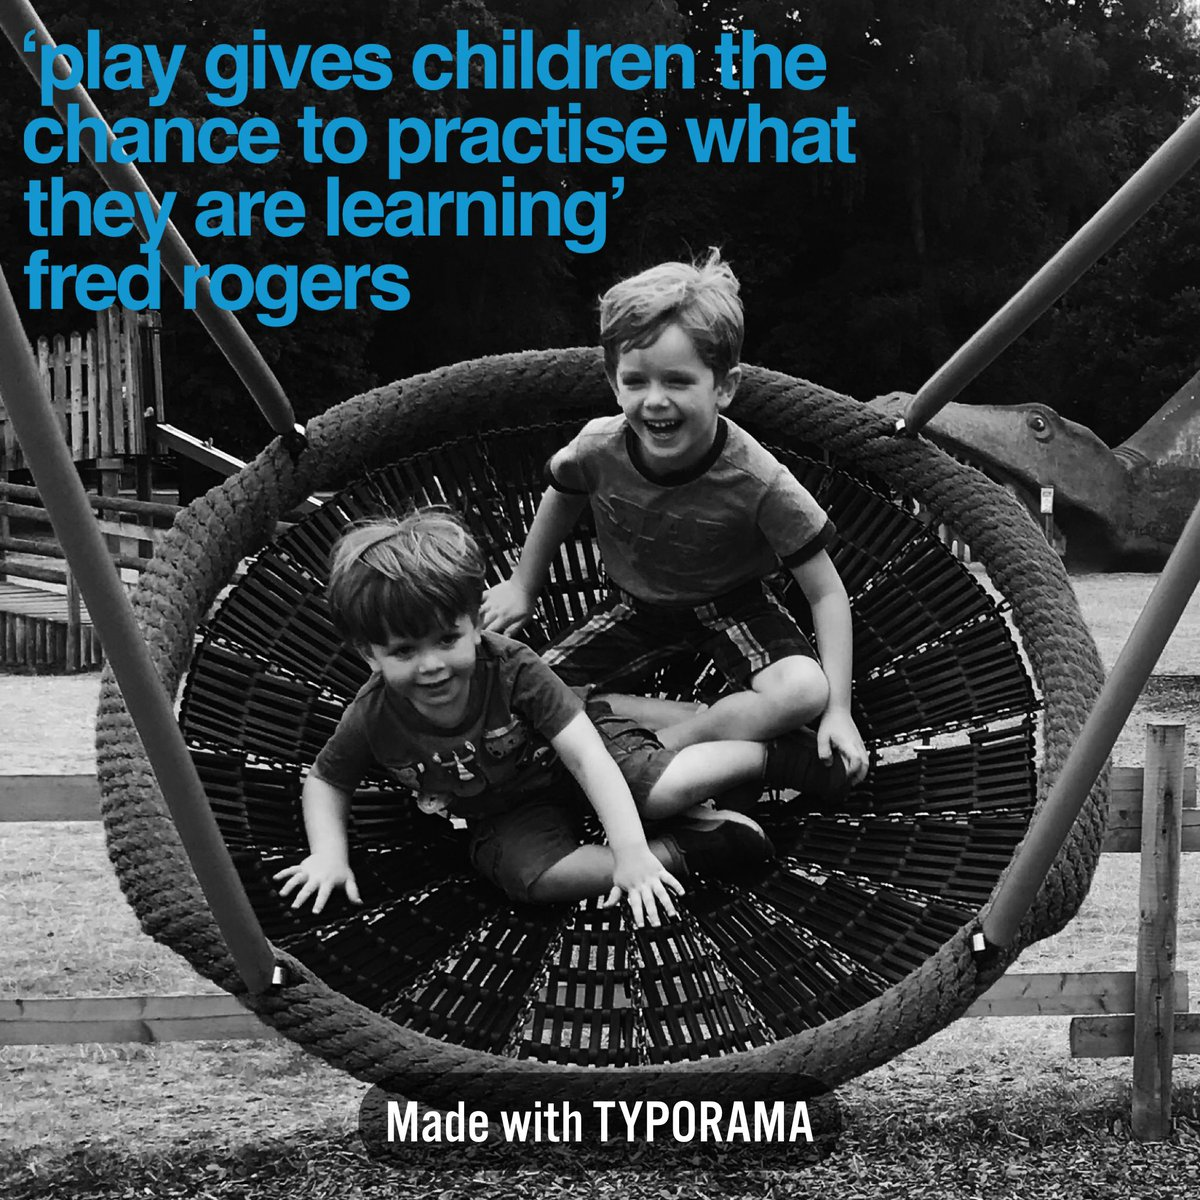 Victoria Auton On Twitter Play Gives Children The Chance To Practise What They Are Learning This Quote From Fred Rogers Is In Honour Of Playday2018 A National Day Of Play Where We